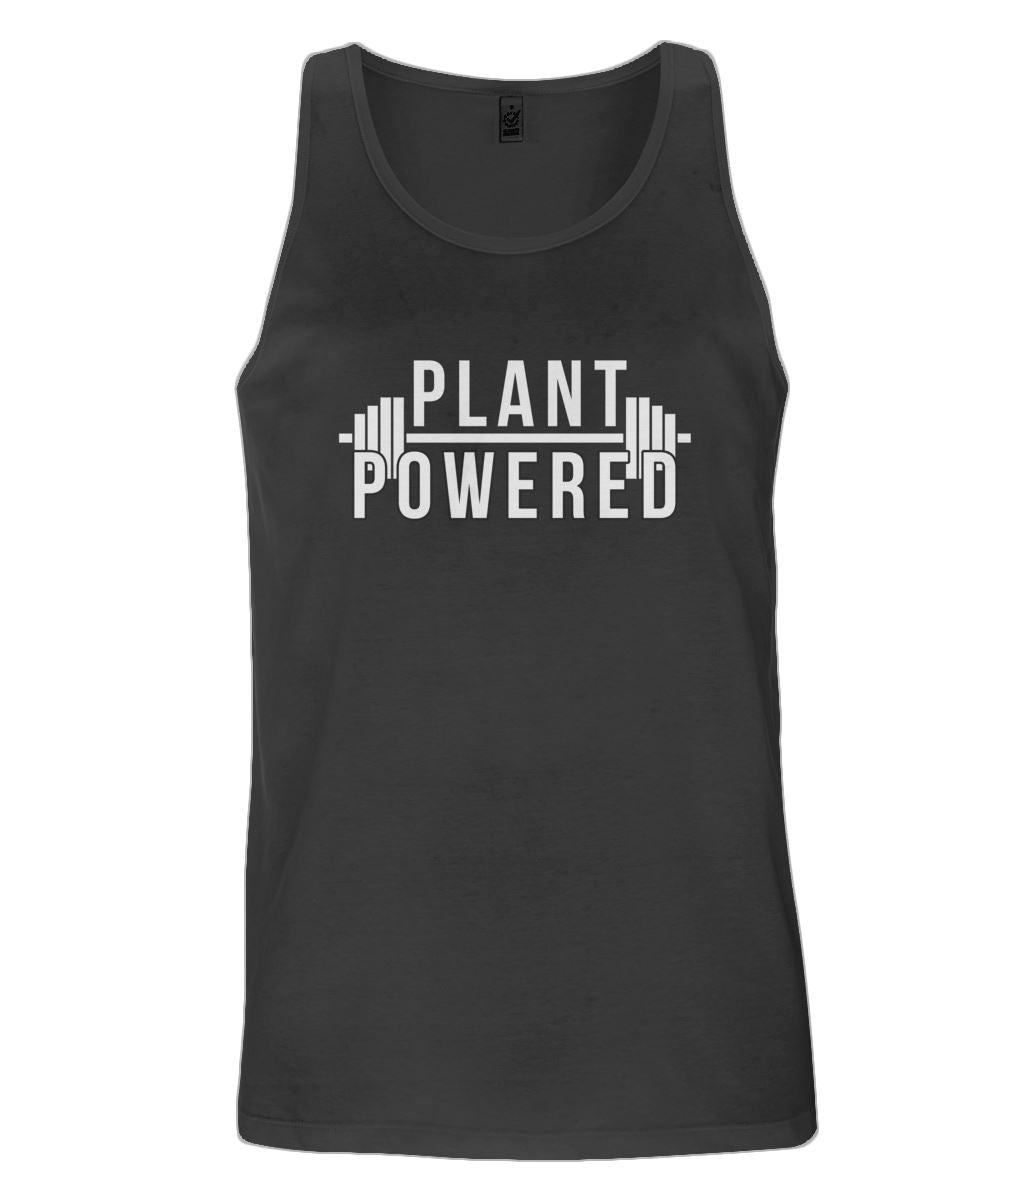 """Plant-Powered"" Men's Vegan Vest - 100% Organic Cotton Clothing Vegan Original Black Small"